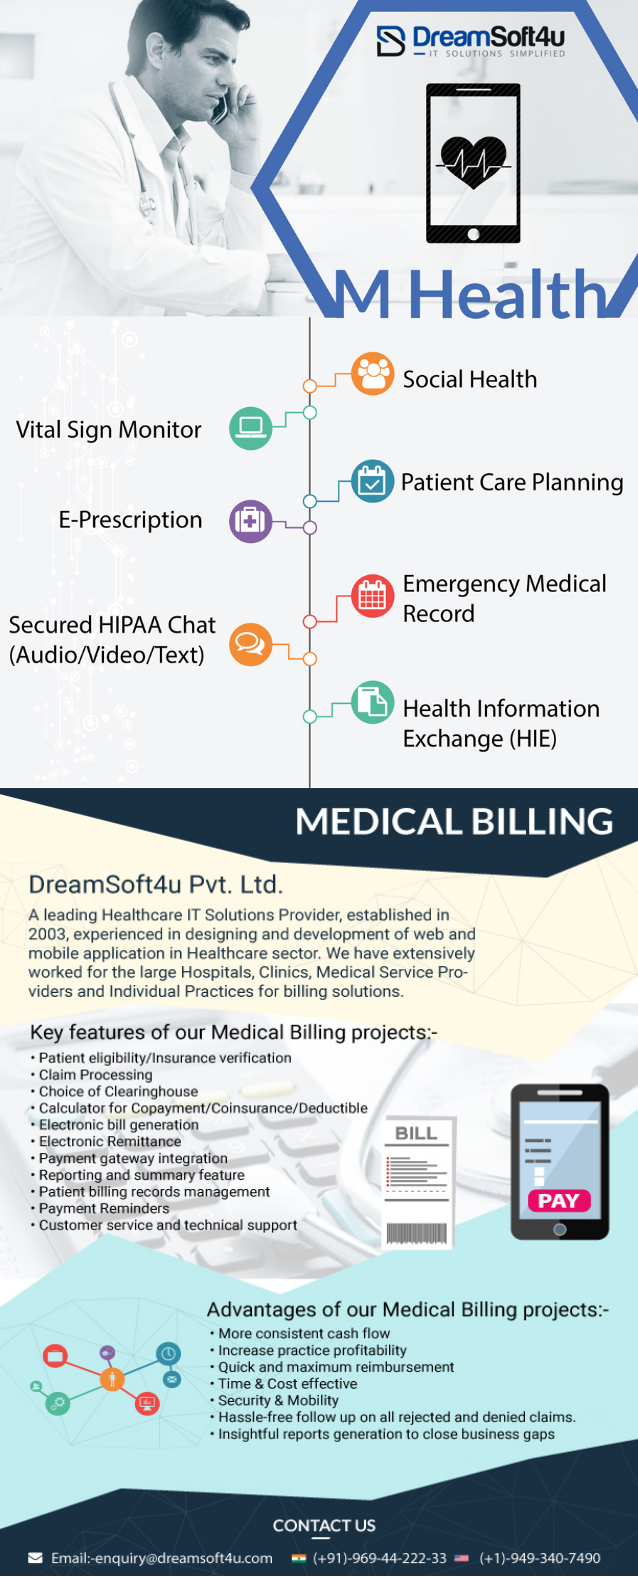 Dreamsoft4u Works For The Healthcare It Services In Usa And In Our